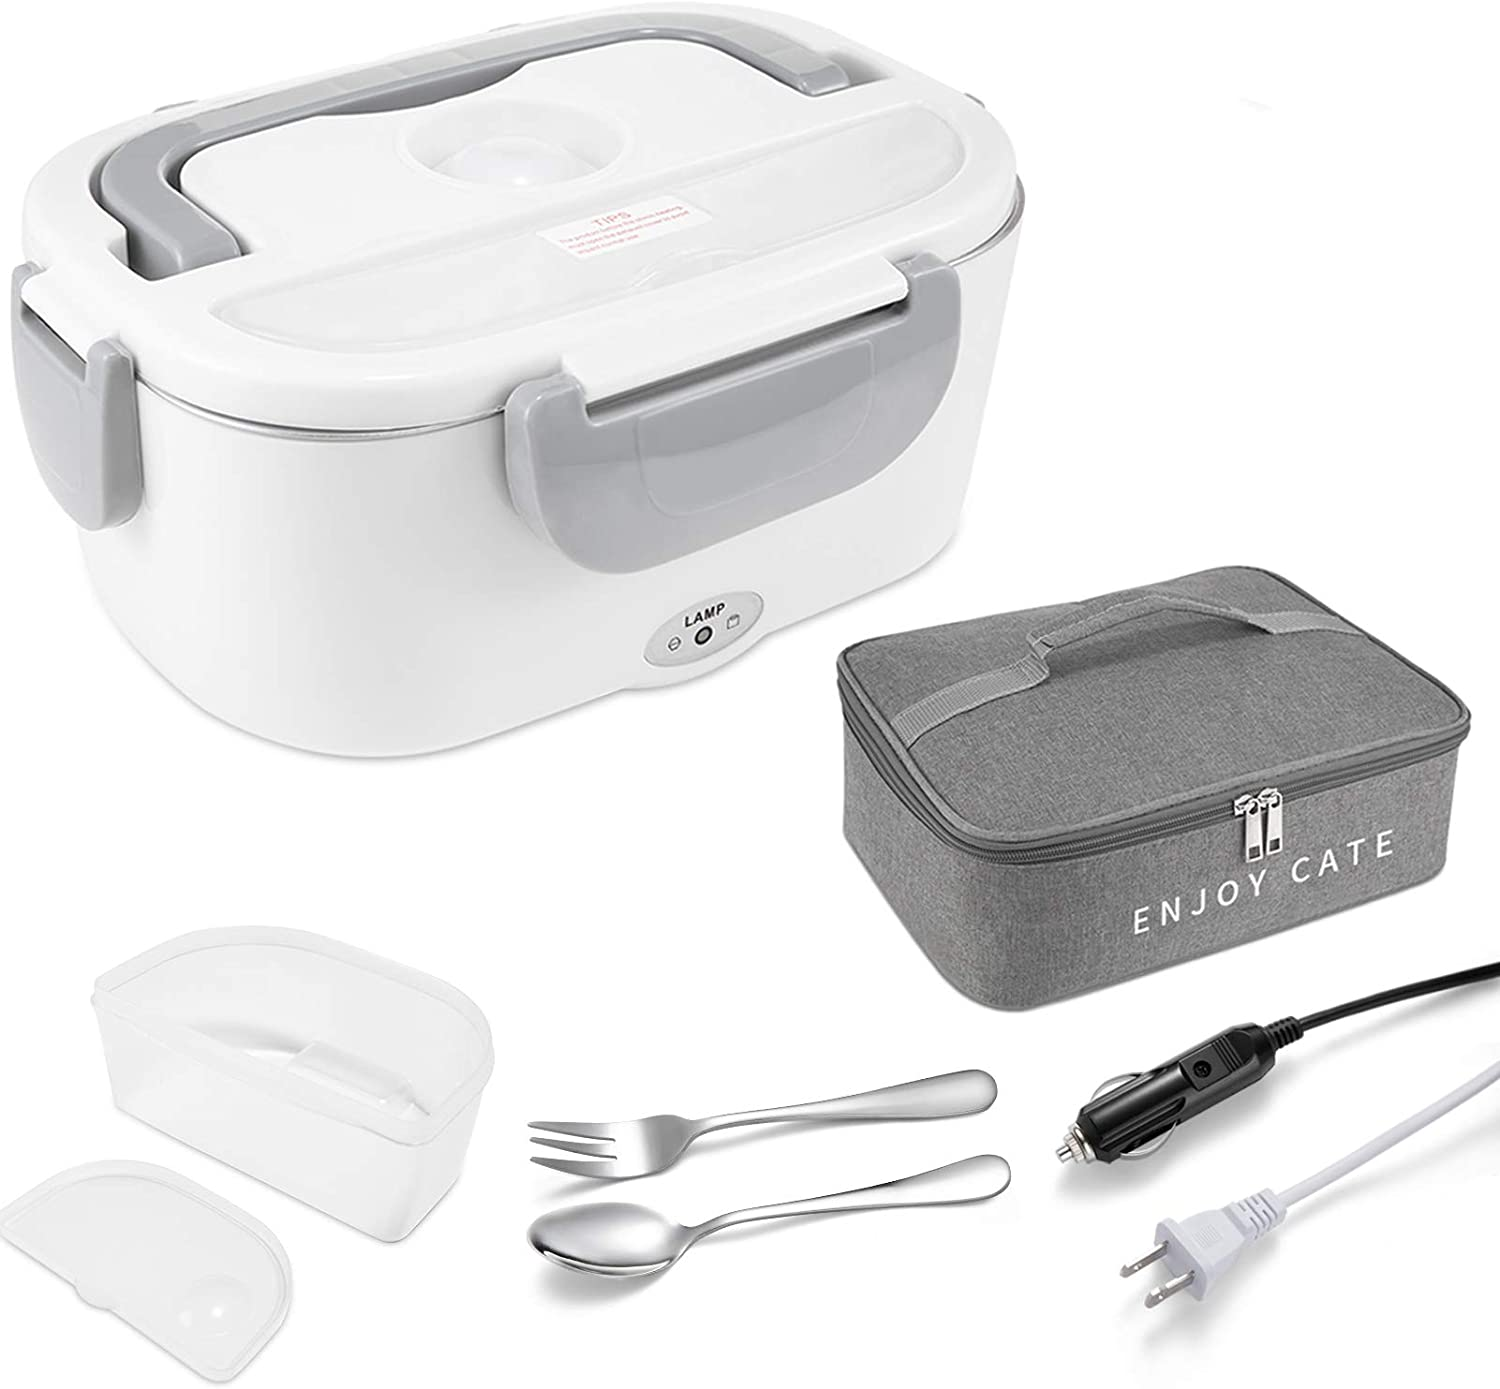 Electric Lunch Box , Portable 2 In 1 Lunch Boxes Food Heater for Car Truck Office, Removable 304 Stainless Steel Food Warmer Container,SS fork & spoon and Carry Bag